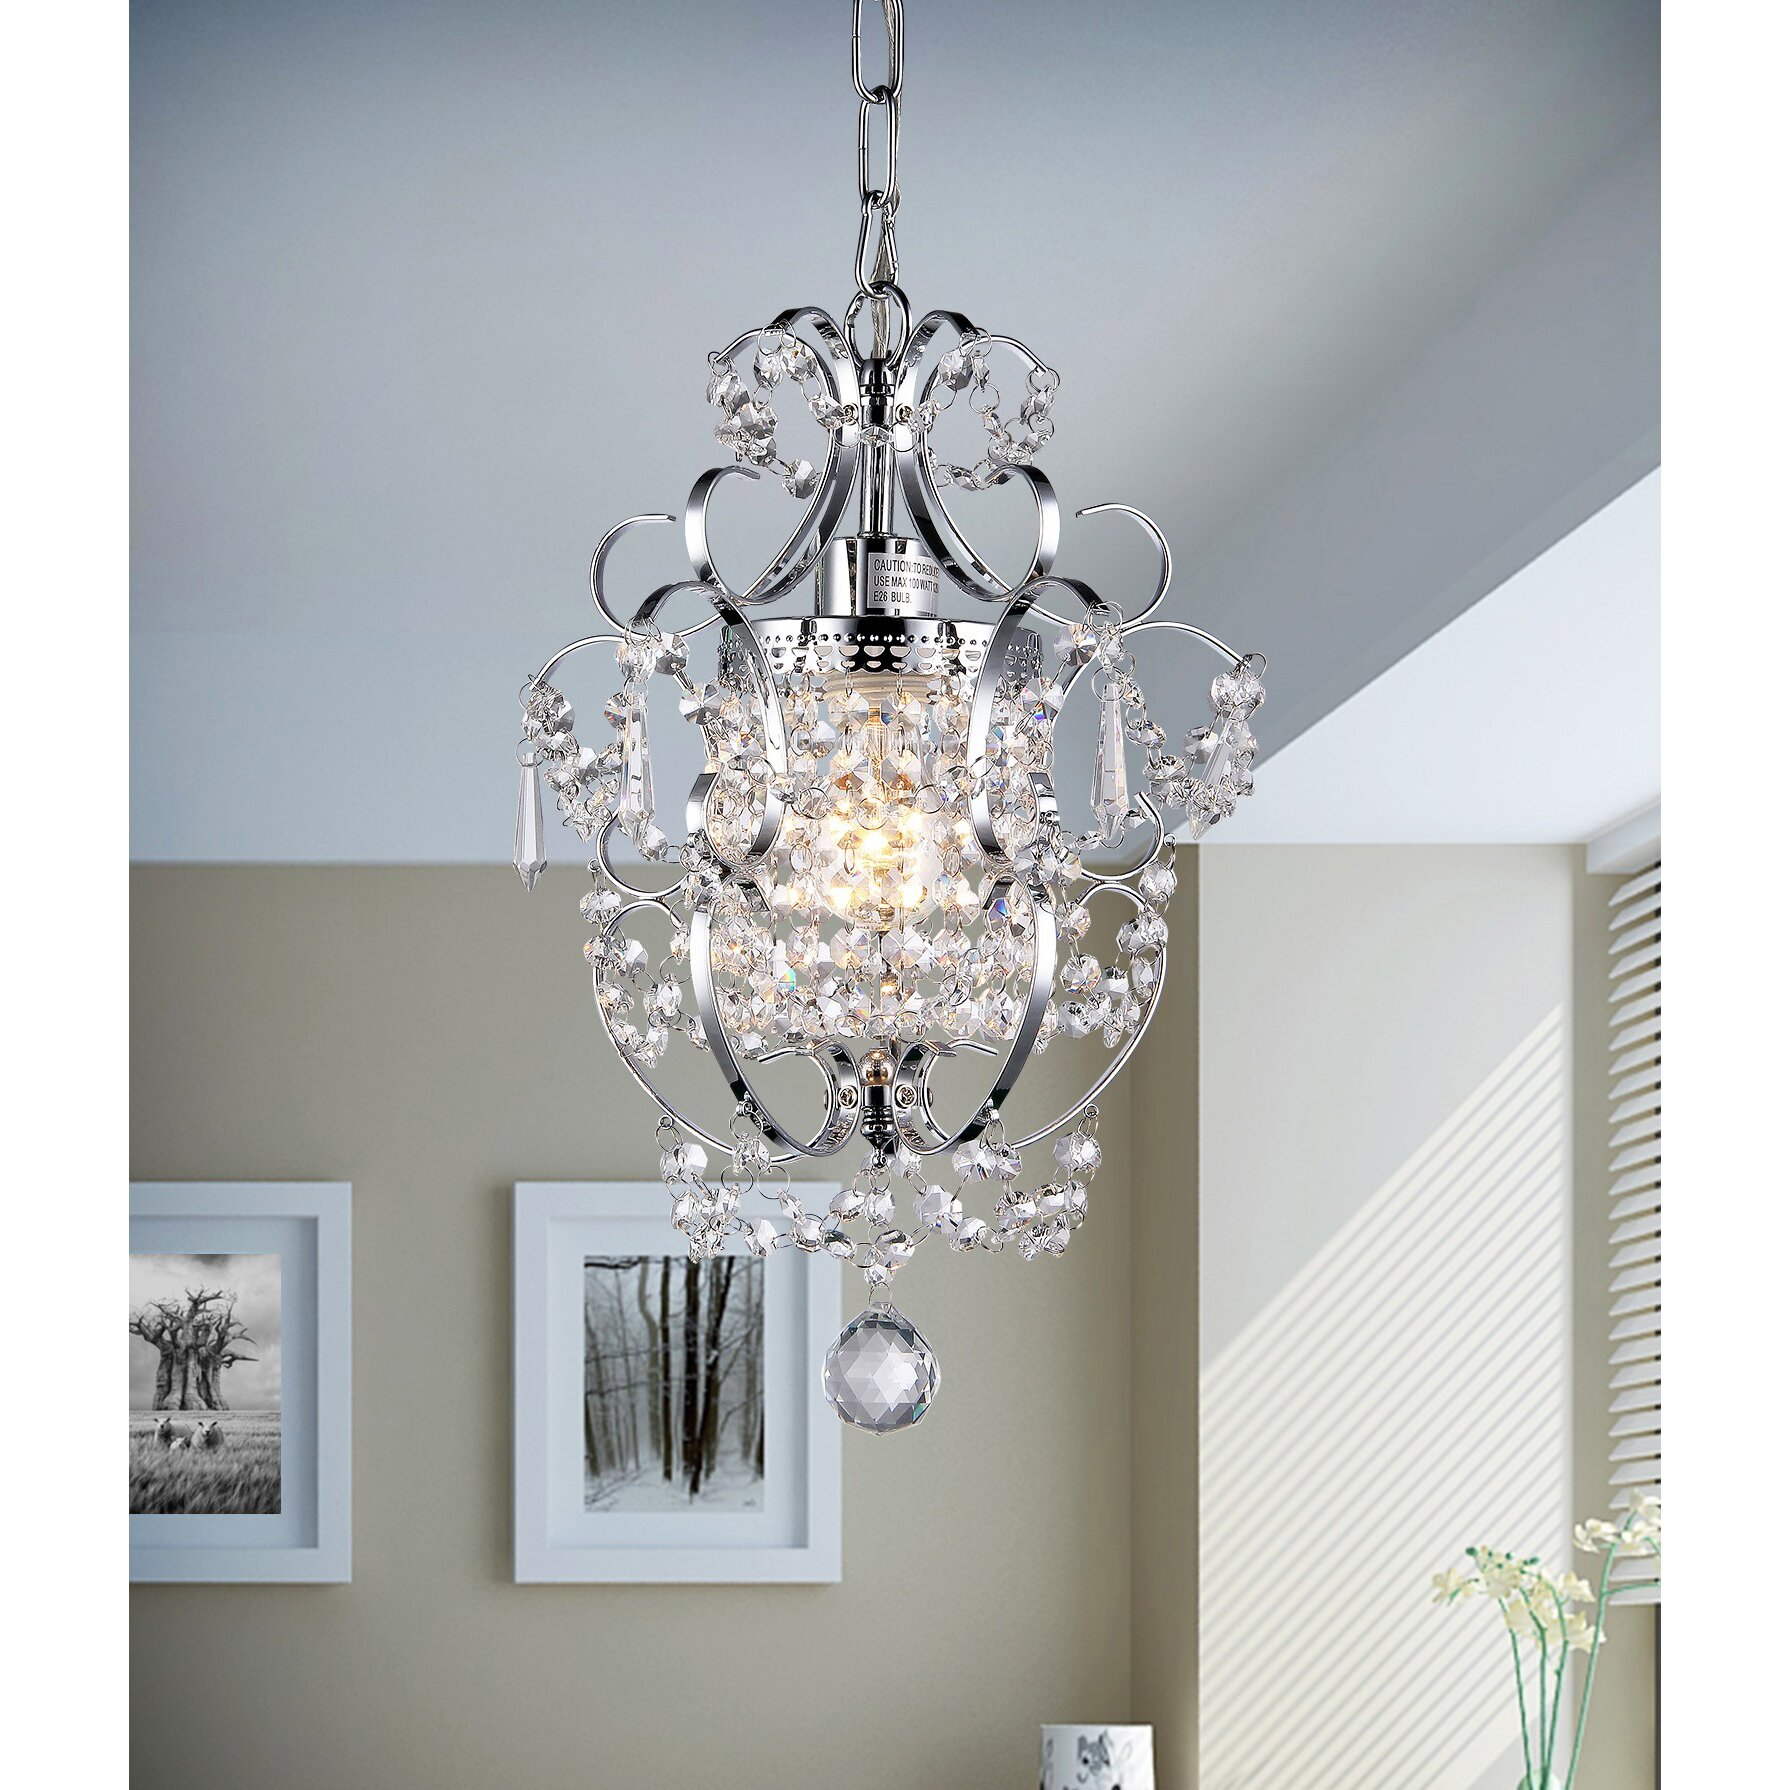 Wayfair Dining Room Lighting: Warehouse Of Tiffany Princess 1 Light Crystal Chandelier